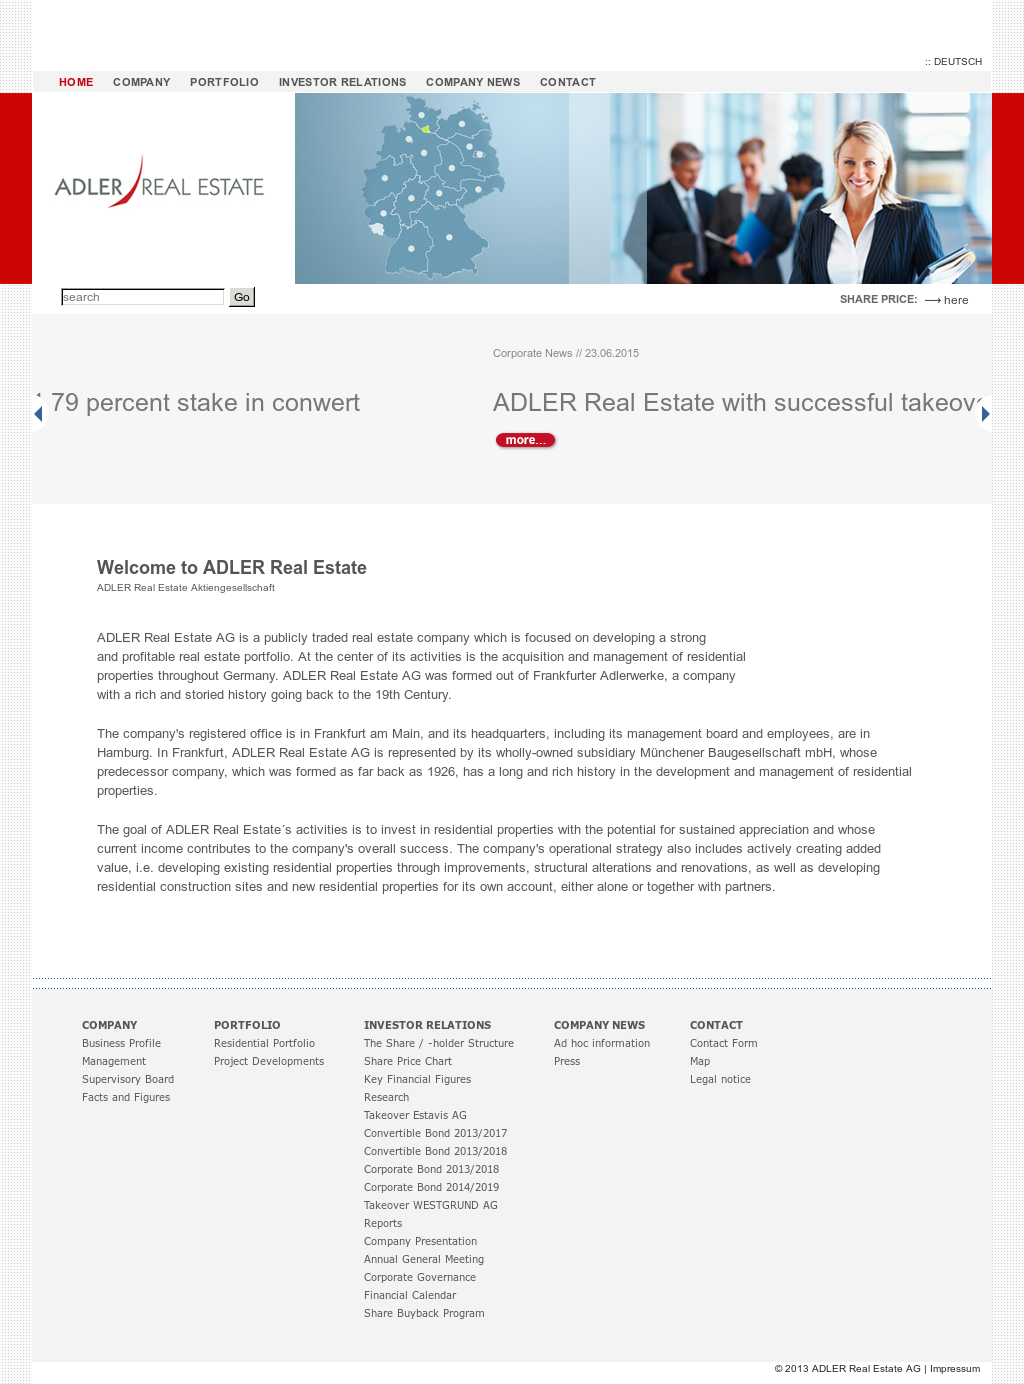 ADLER Real Estate Competitors, Revenue and Employees - Owler